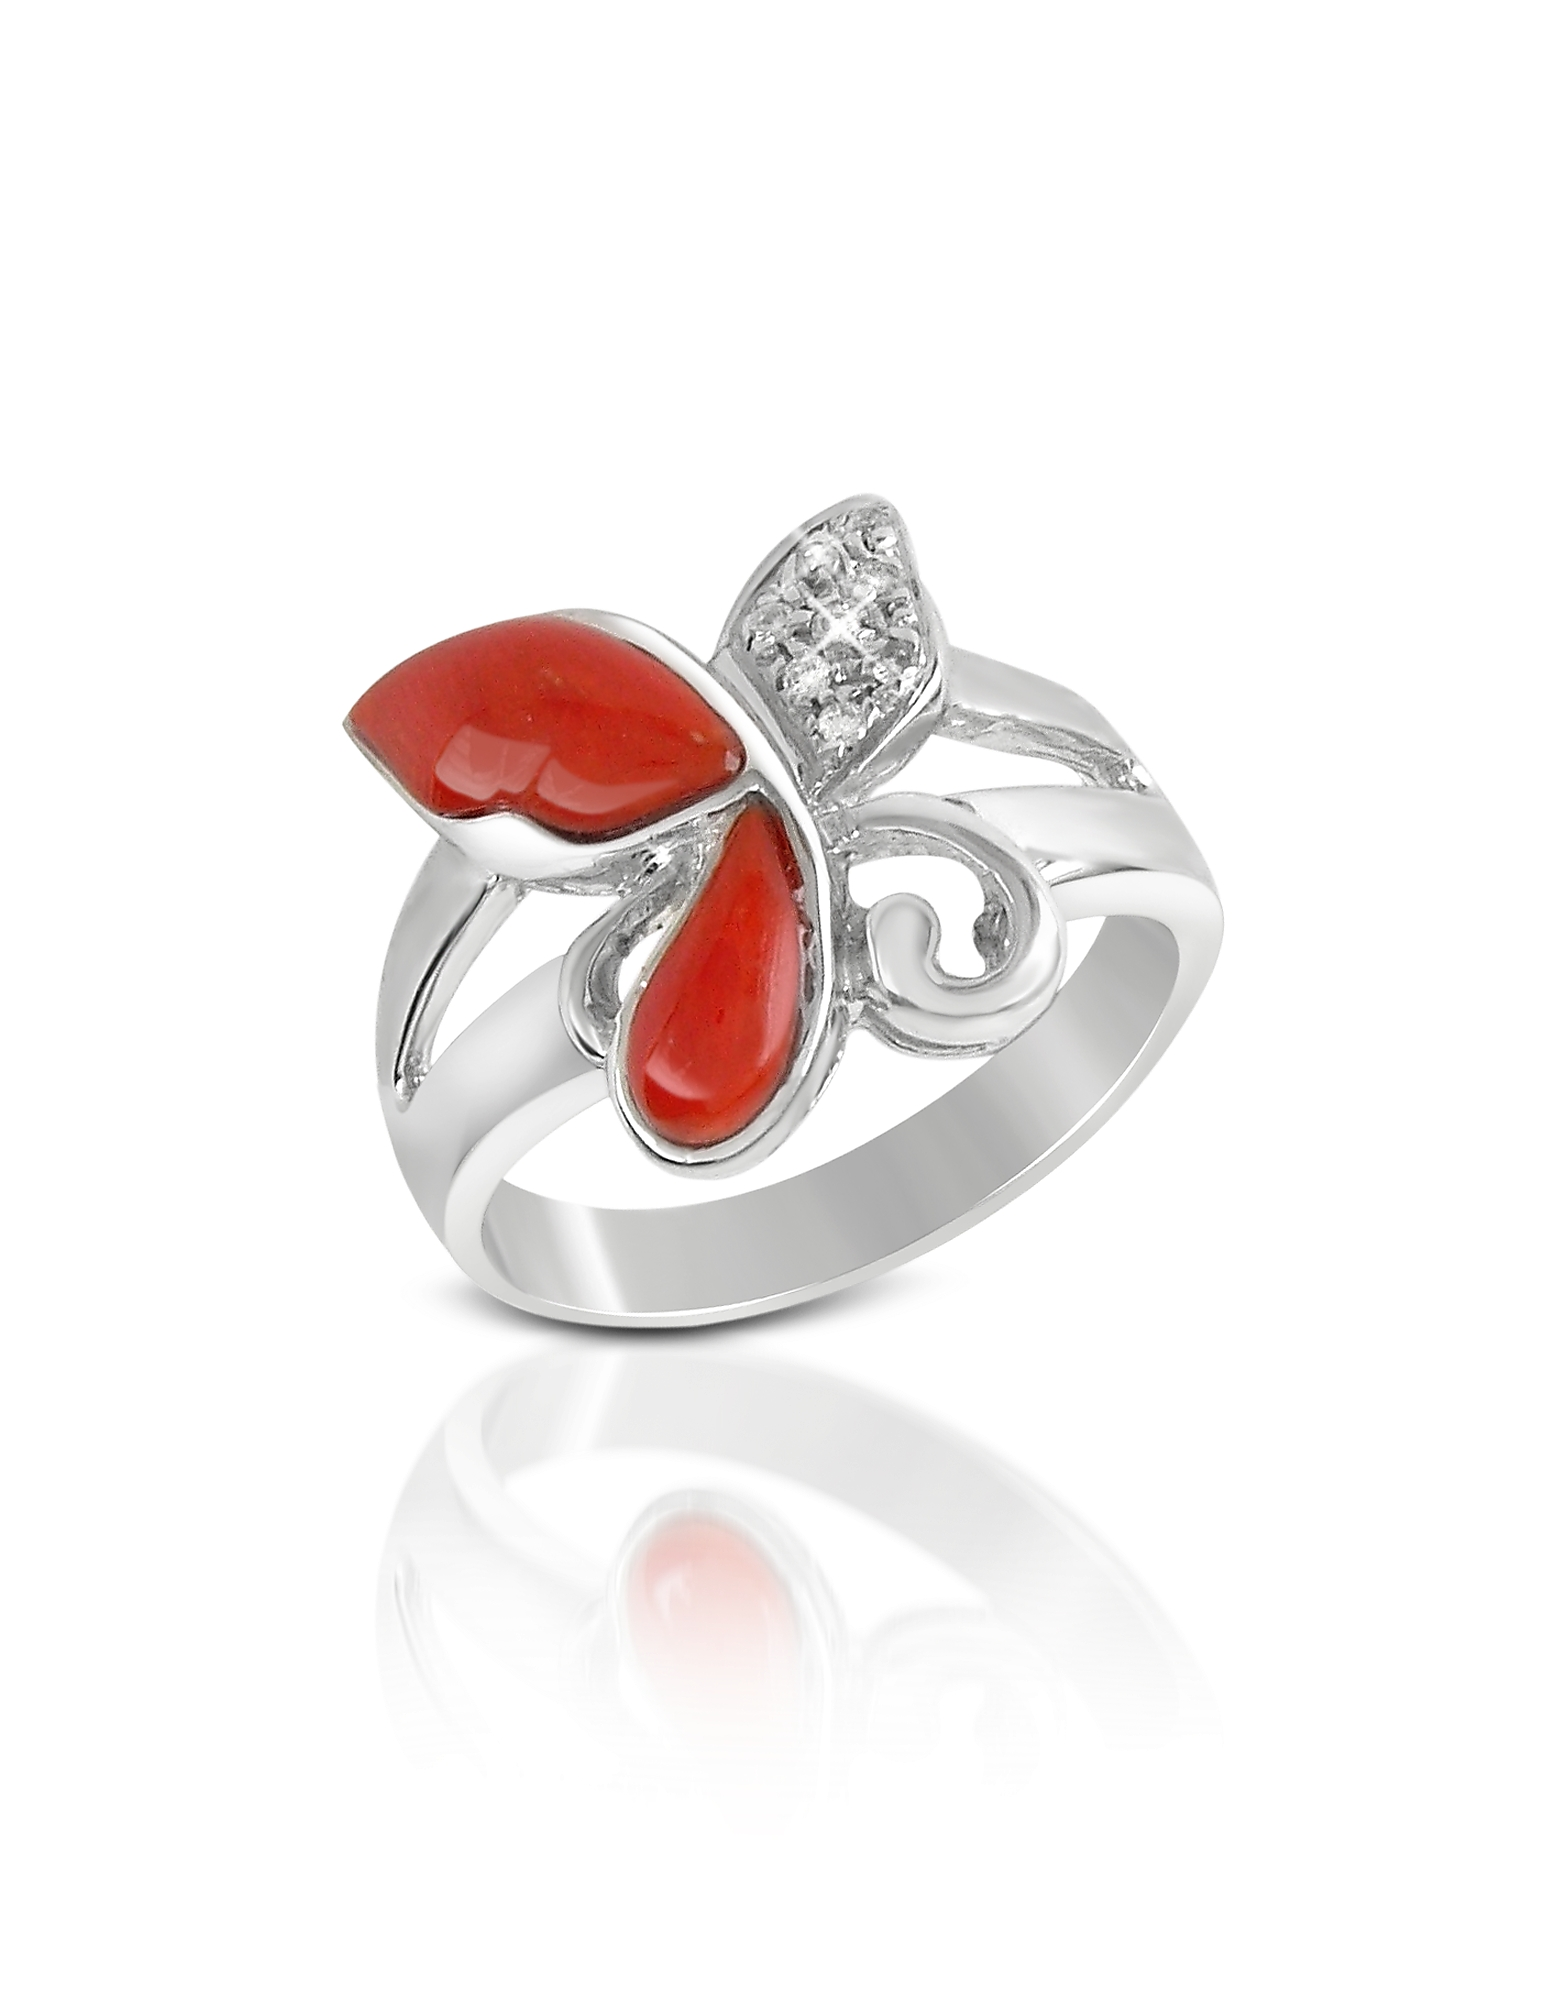 Del Gatto Designer Rings, Diamond and Red Coral Butterfly 18K Gold Ring